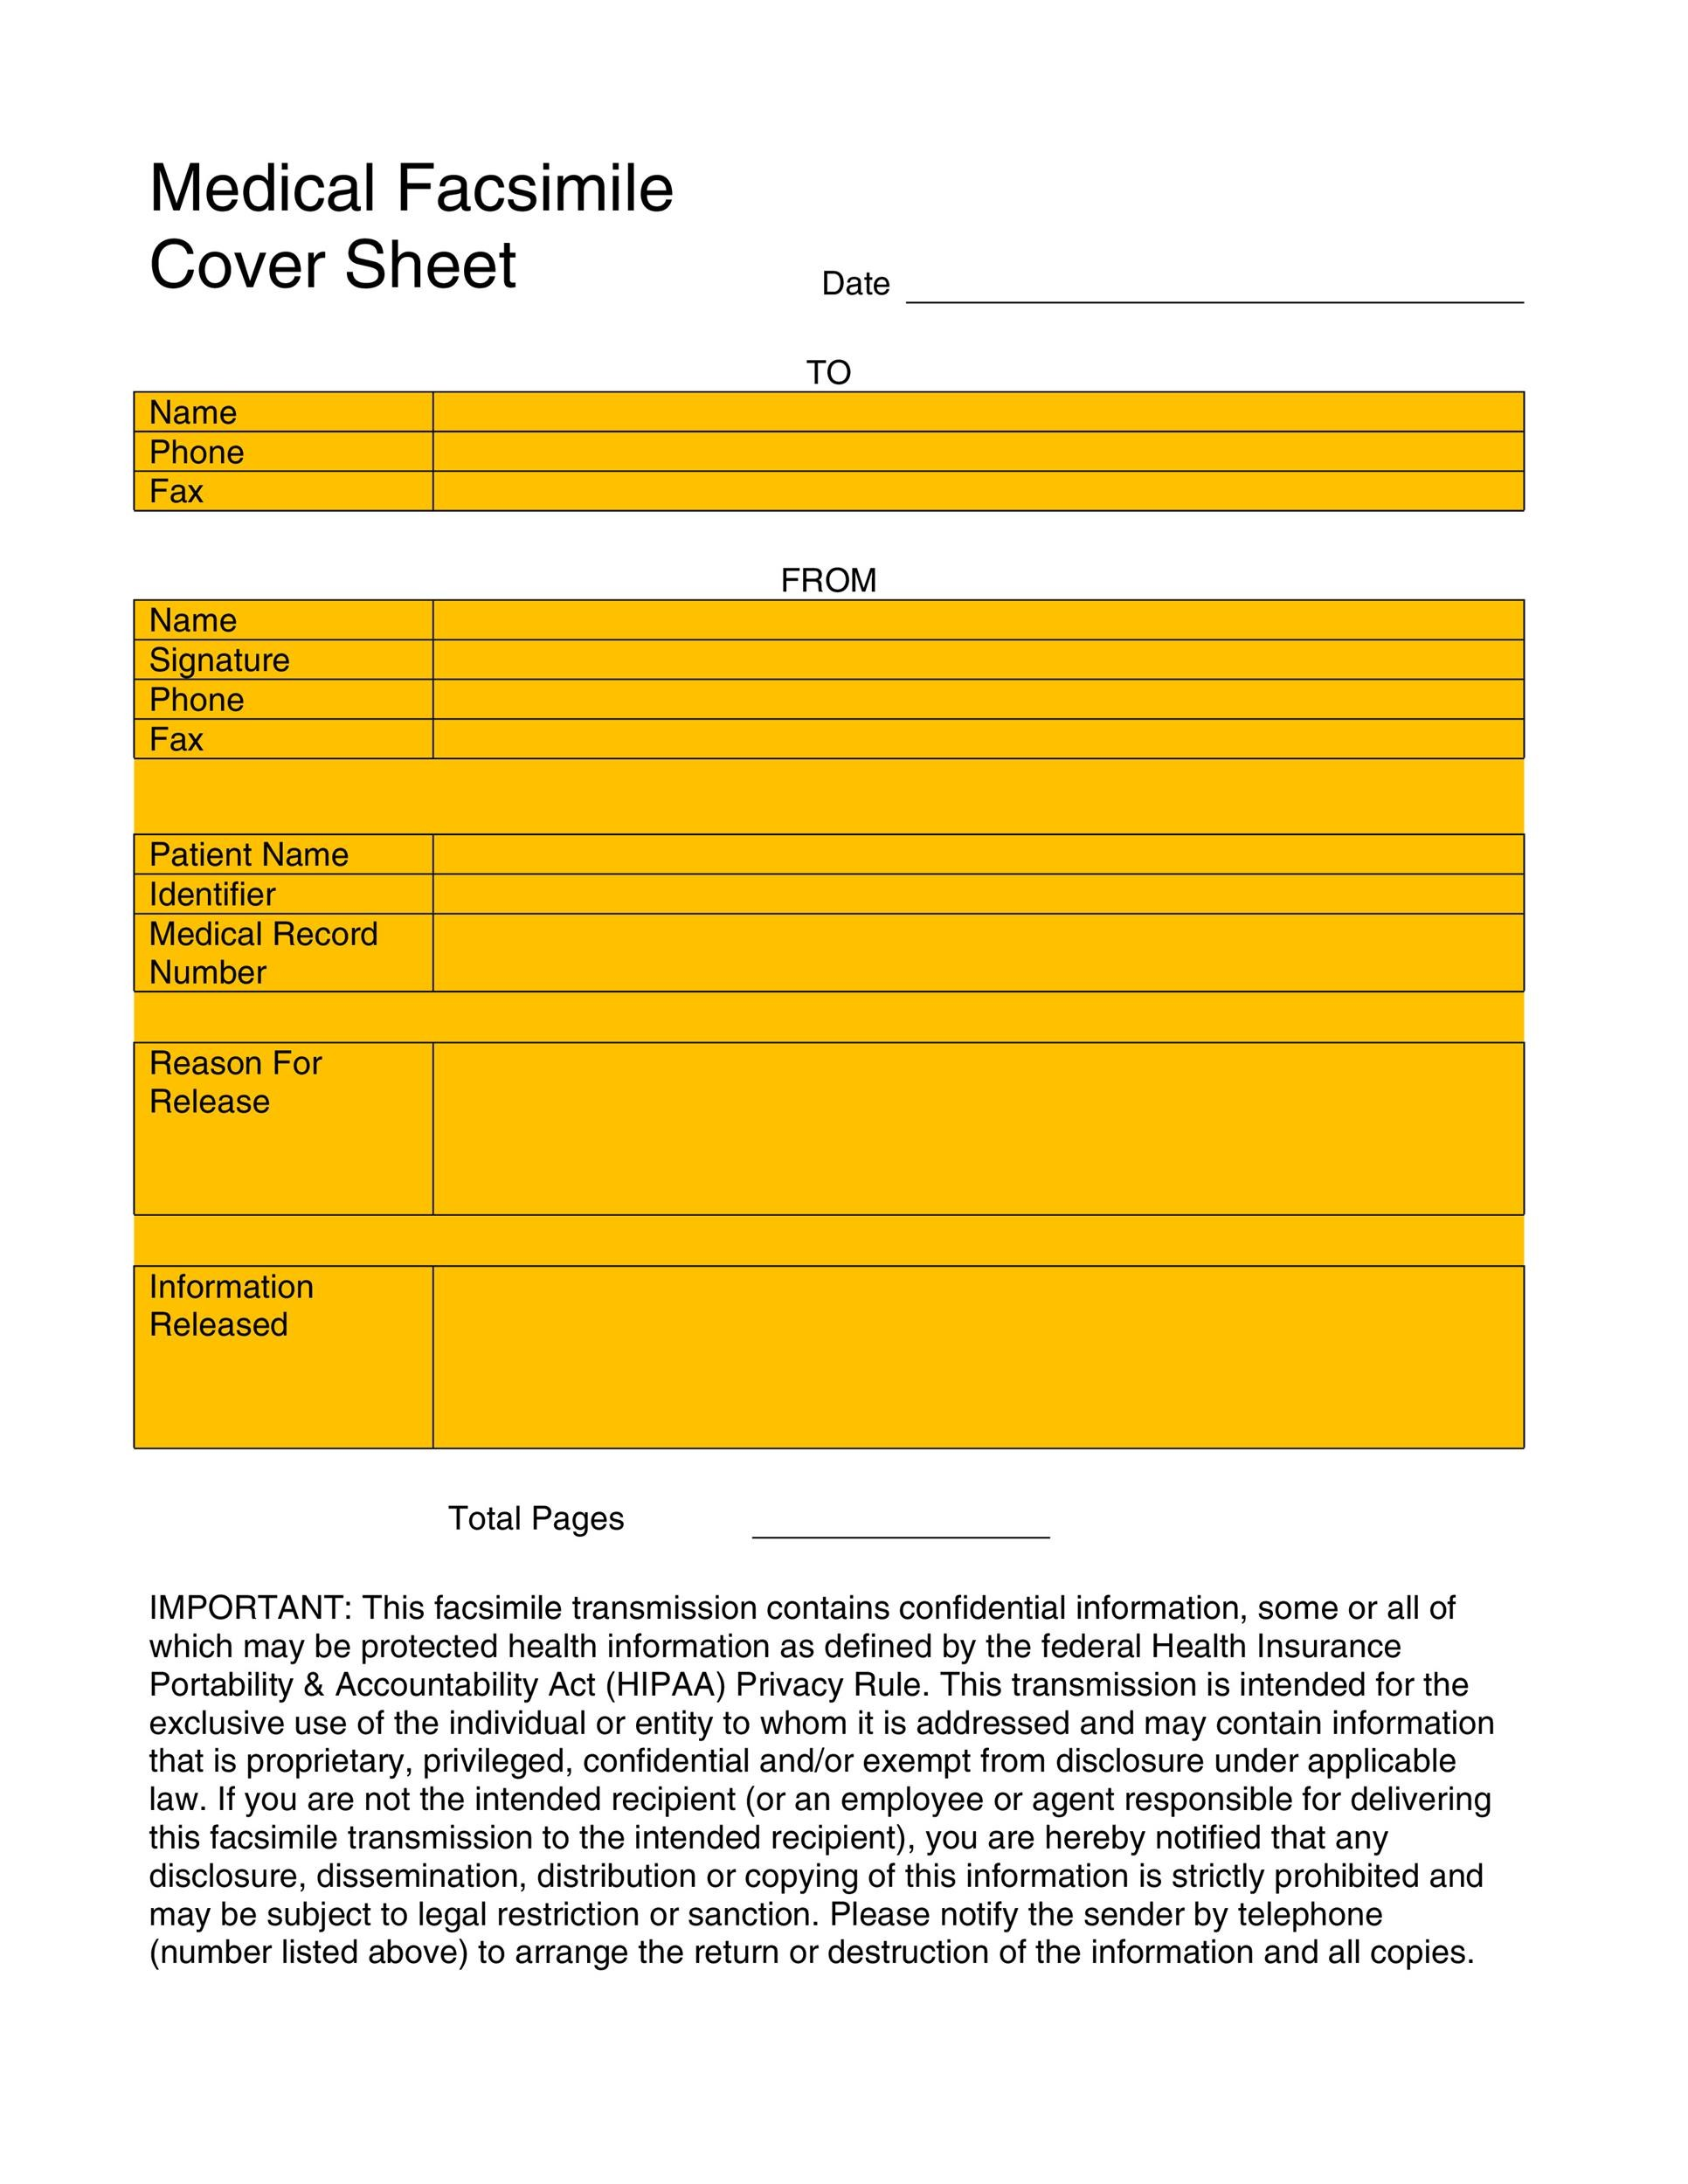 40 Printable Fax Cover Sheet Templates - Template Lab - sample medical fax cover sheet